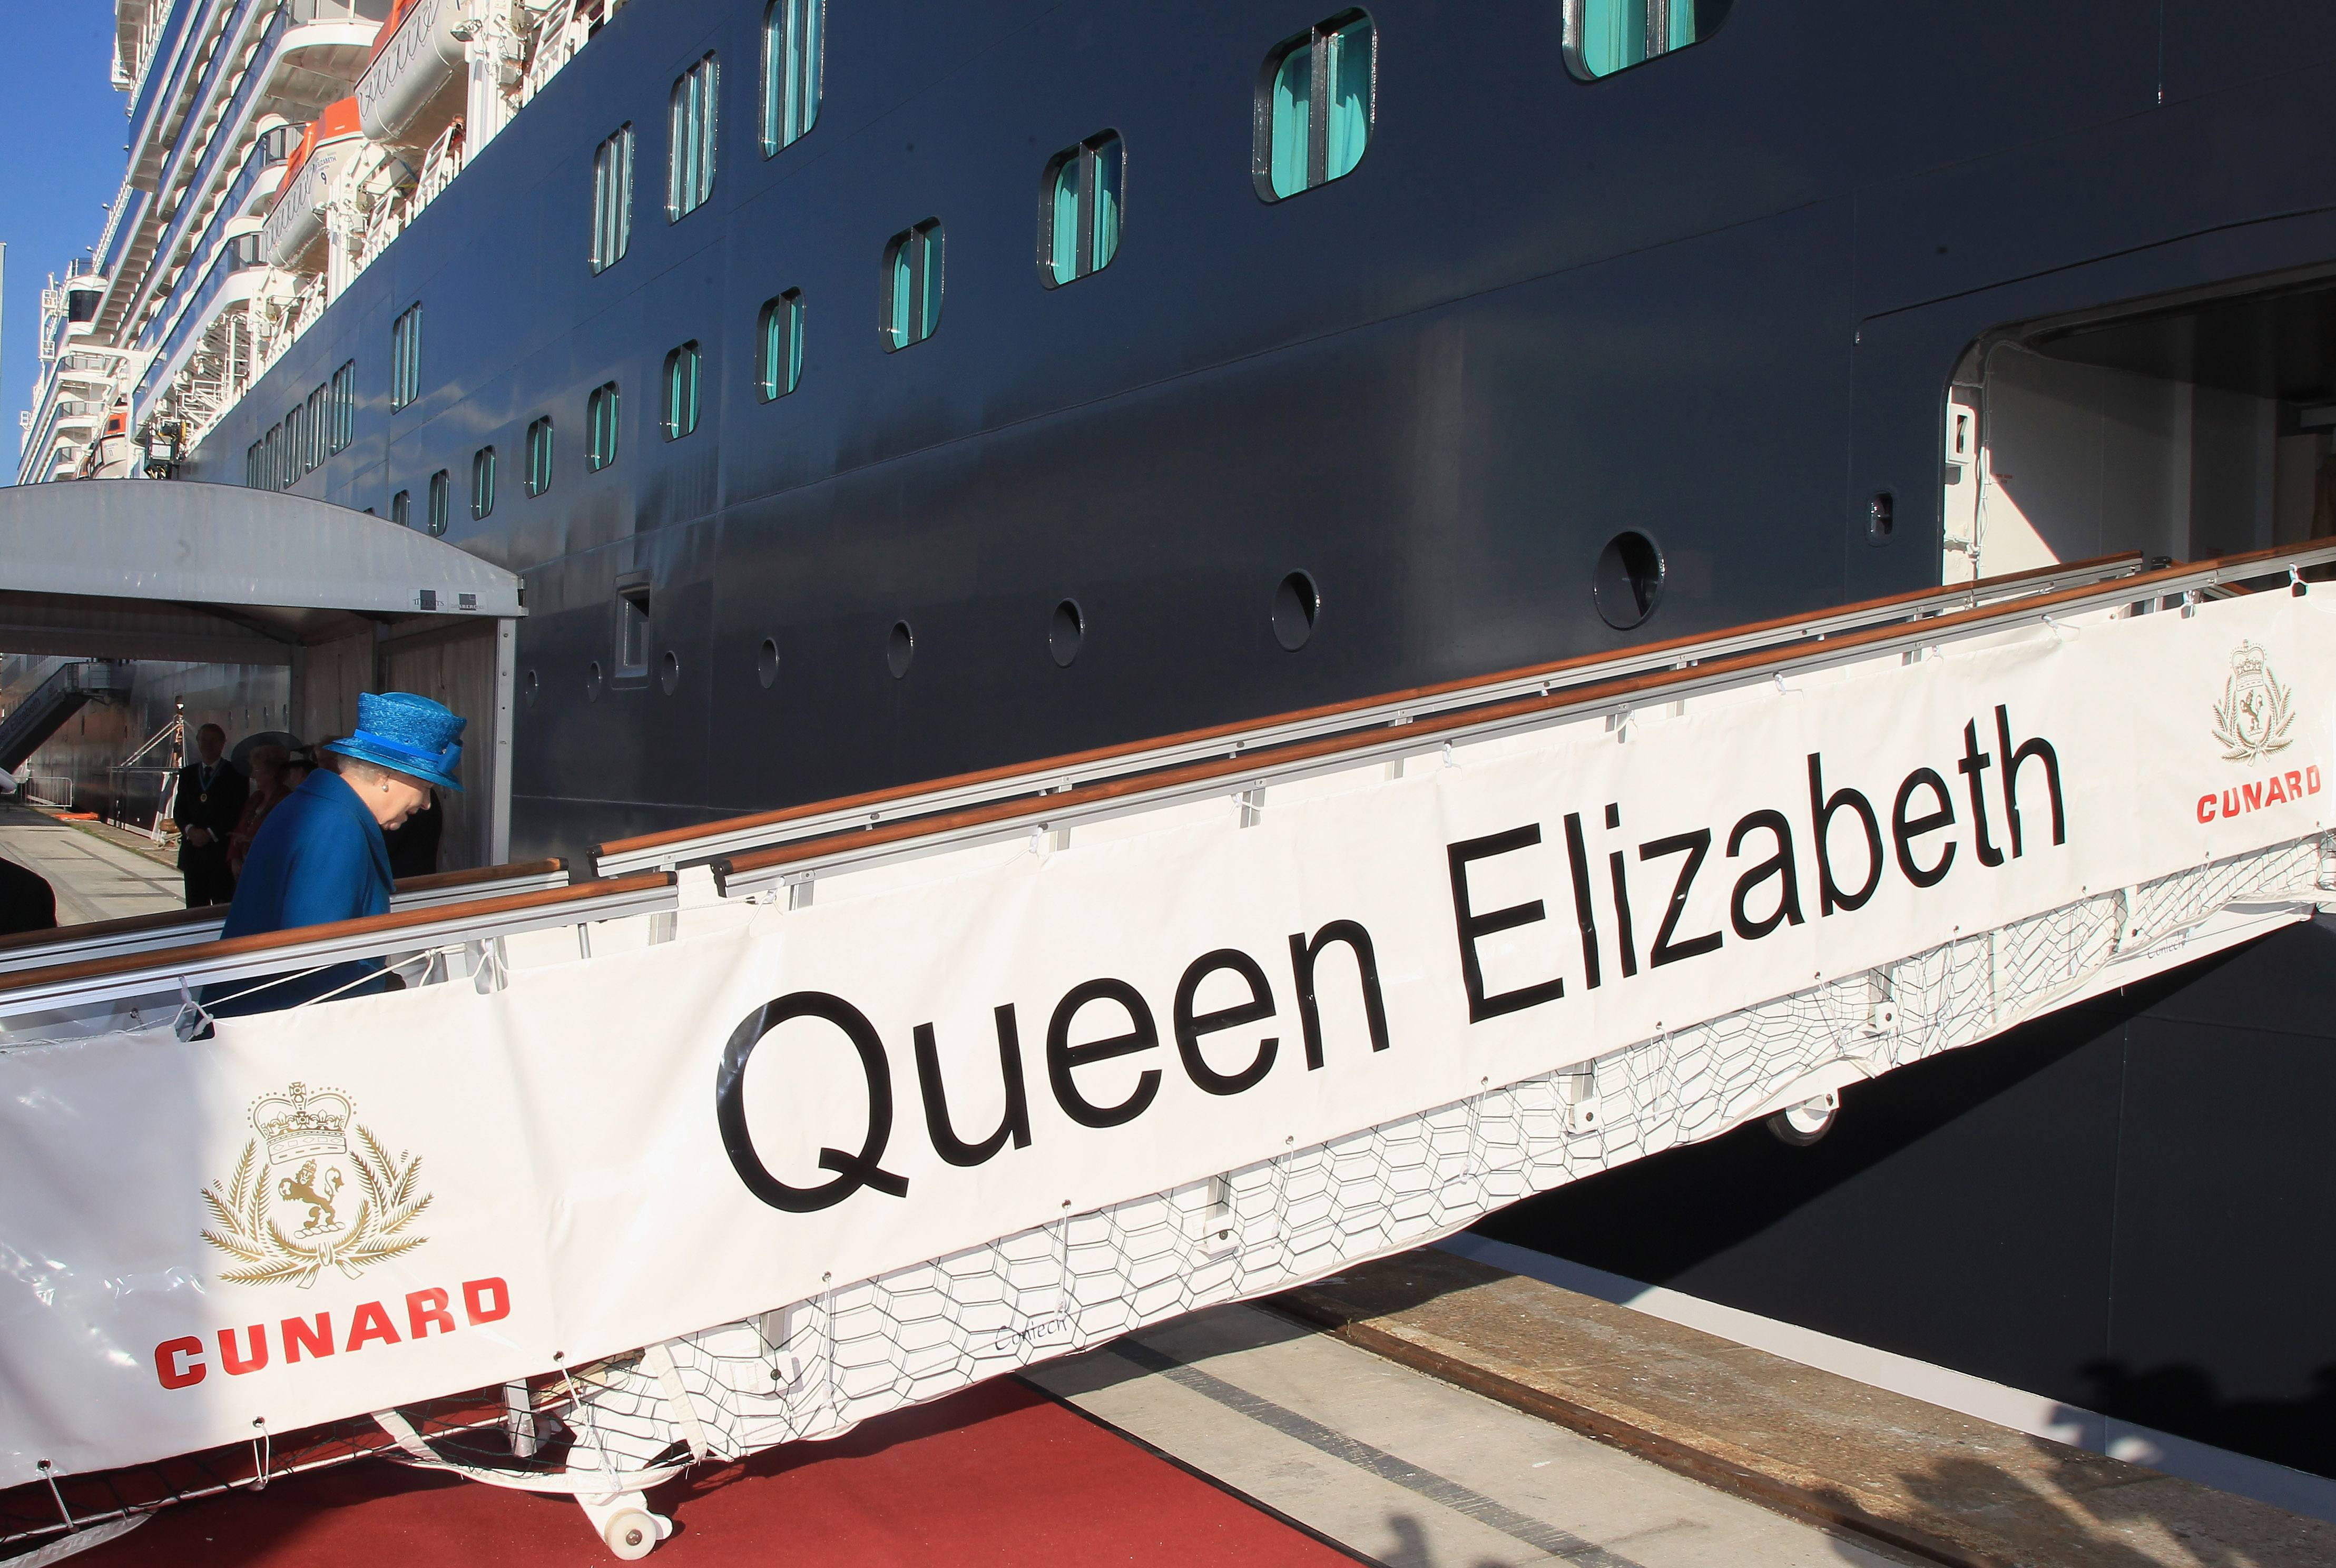 Queen Elizabeth II arrives to name Cunard's new cruise-liner